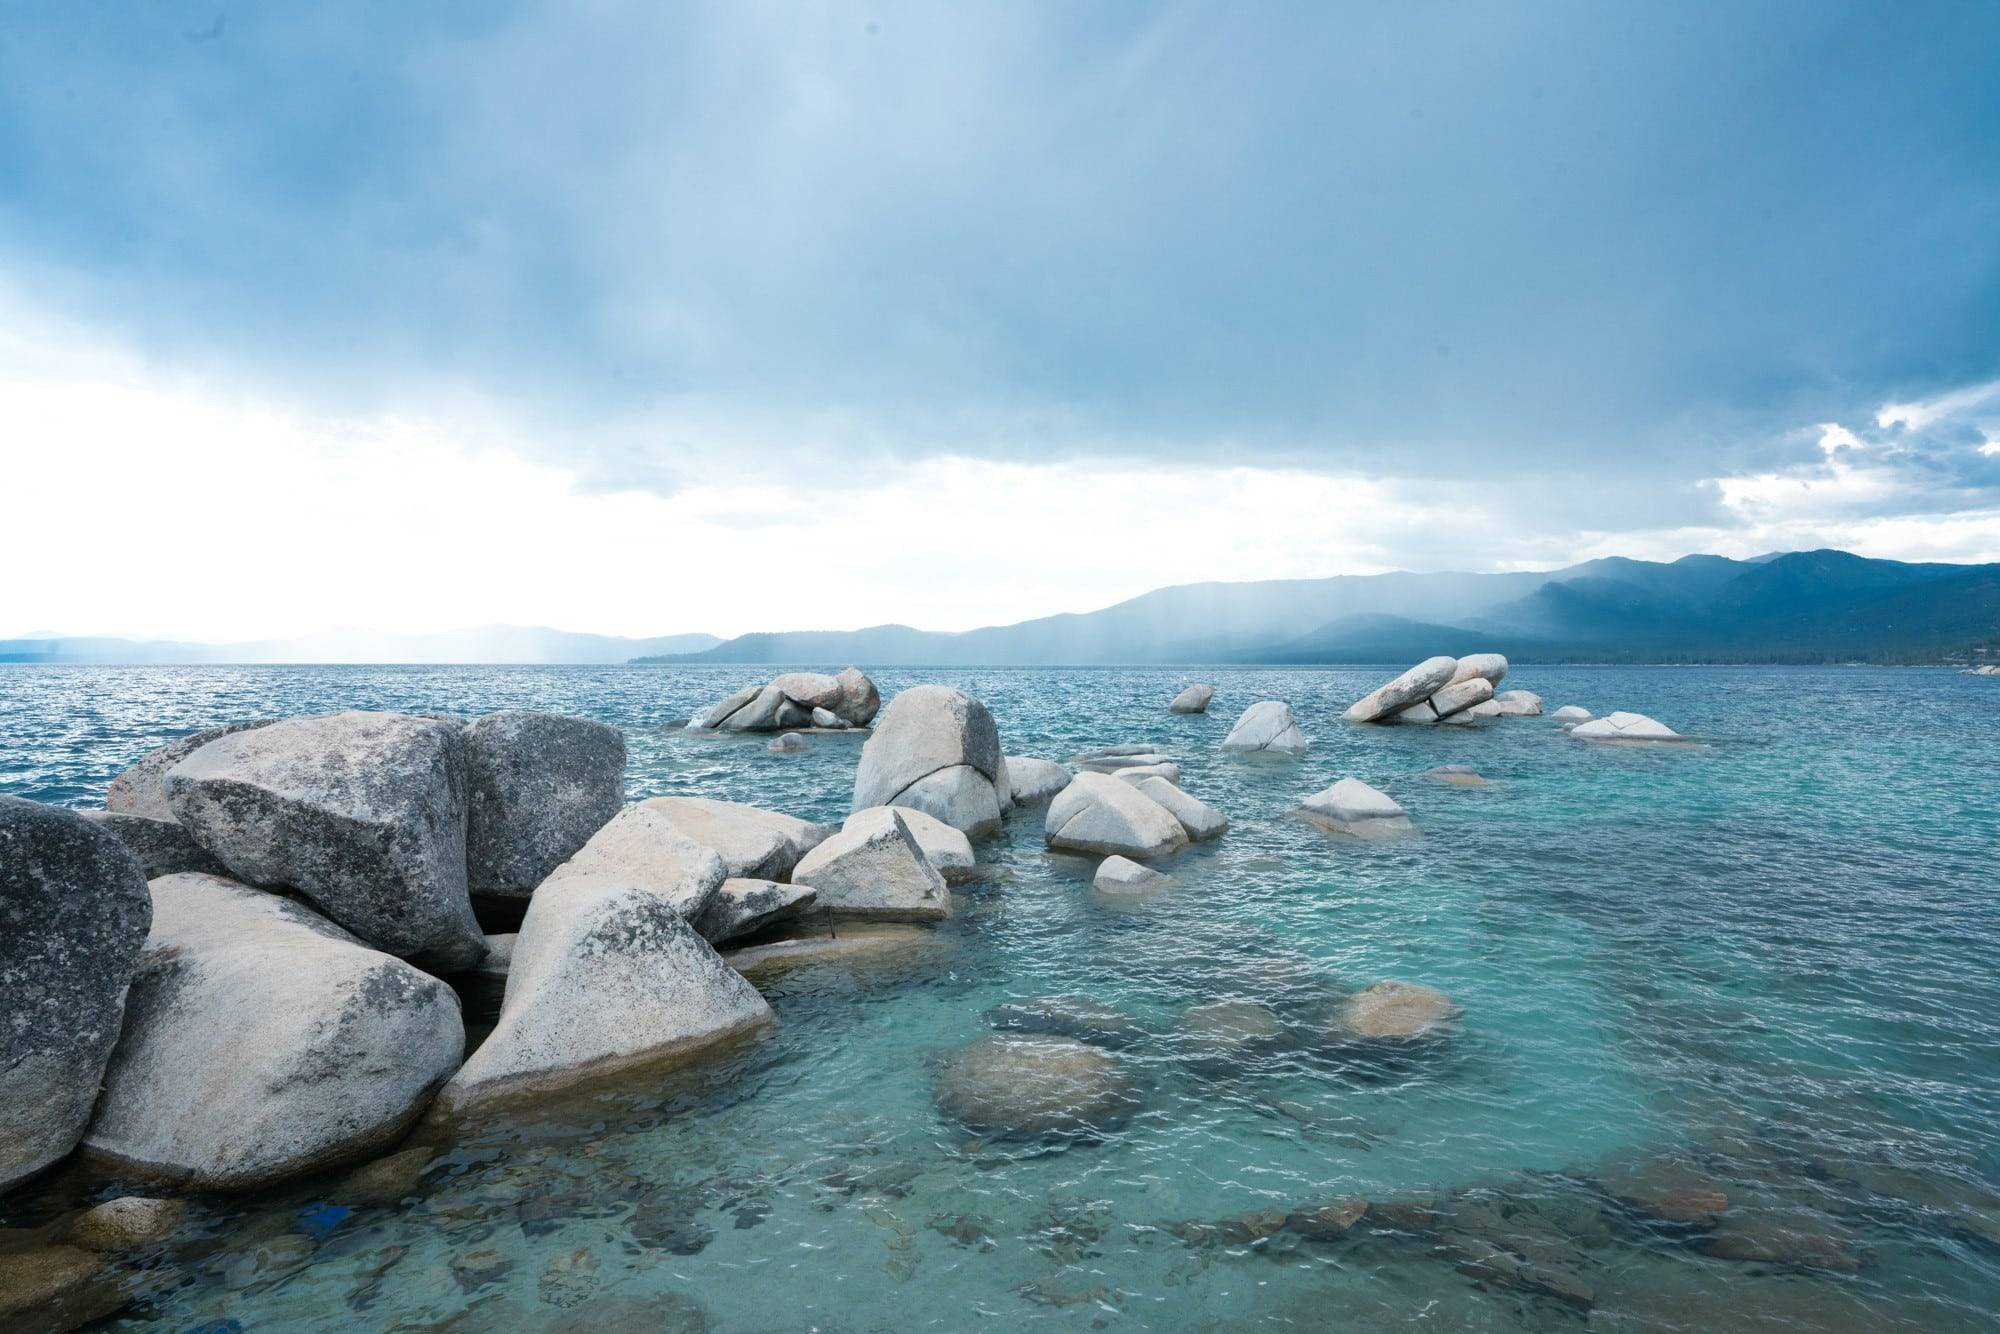 Sand Harbor State Park // Planning an adventure-packed vacation to Lake Tahoe? Here are 12 of the best things to do around Lake Tahoe for the outdoor enthusiast.